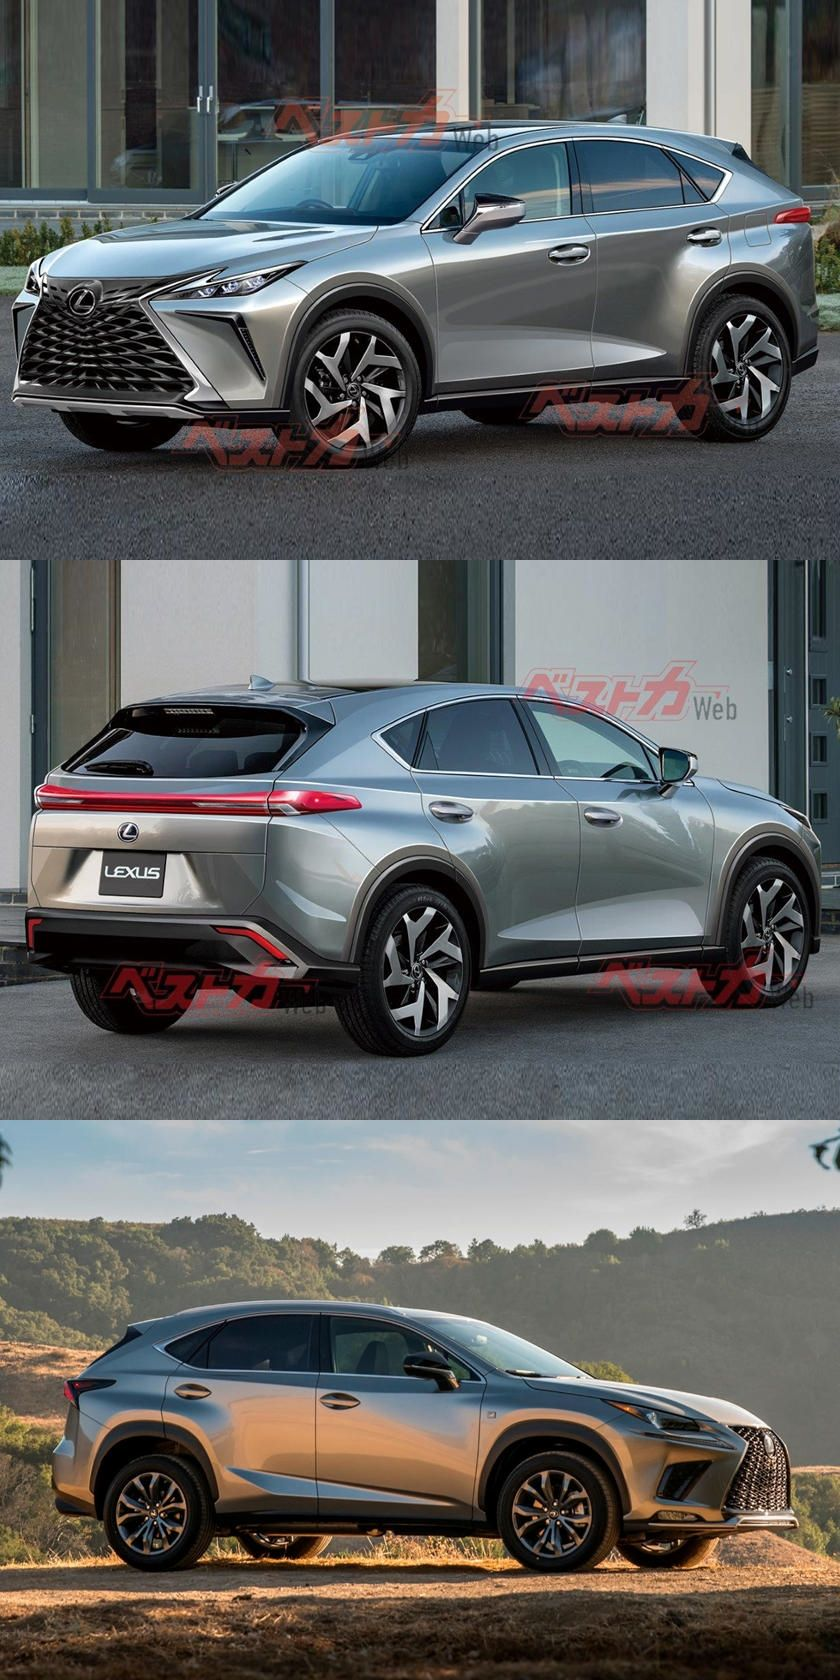 Next Generation Lexus Nx Details Have Arrived And They Re More Interesting Than You Think In 2020 Lexus New Lexus Toyota Venza